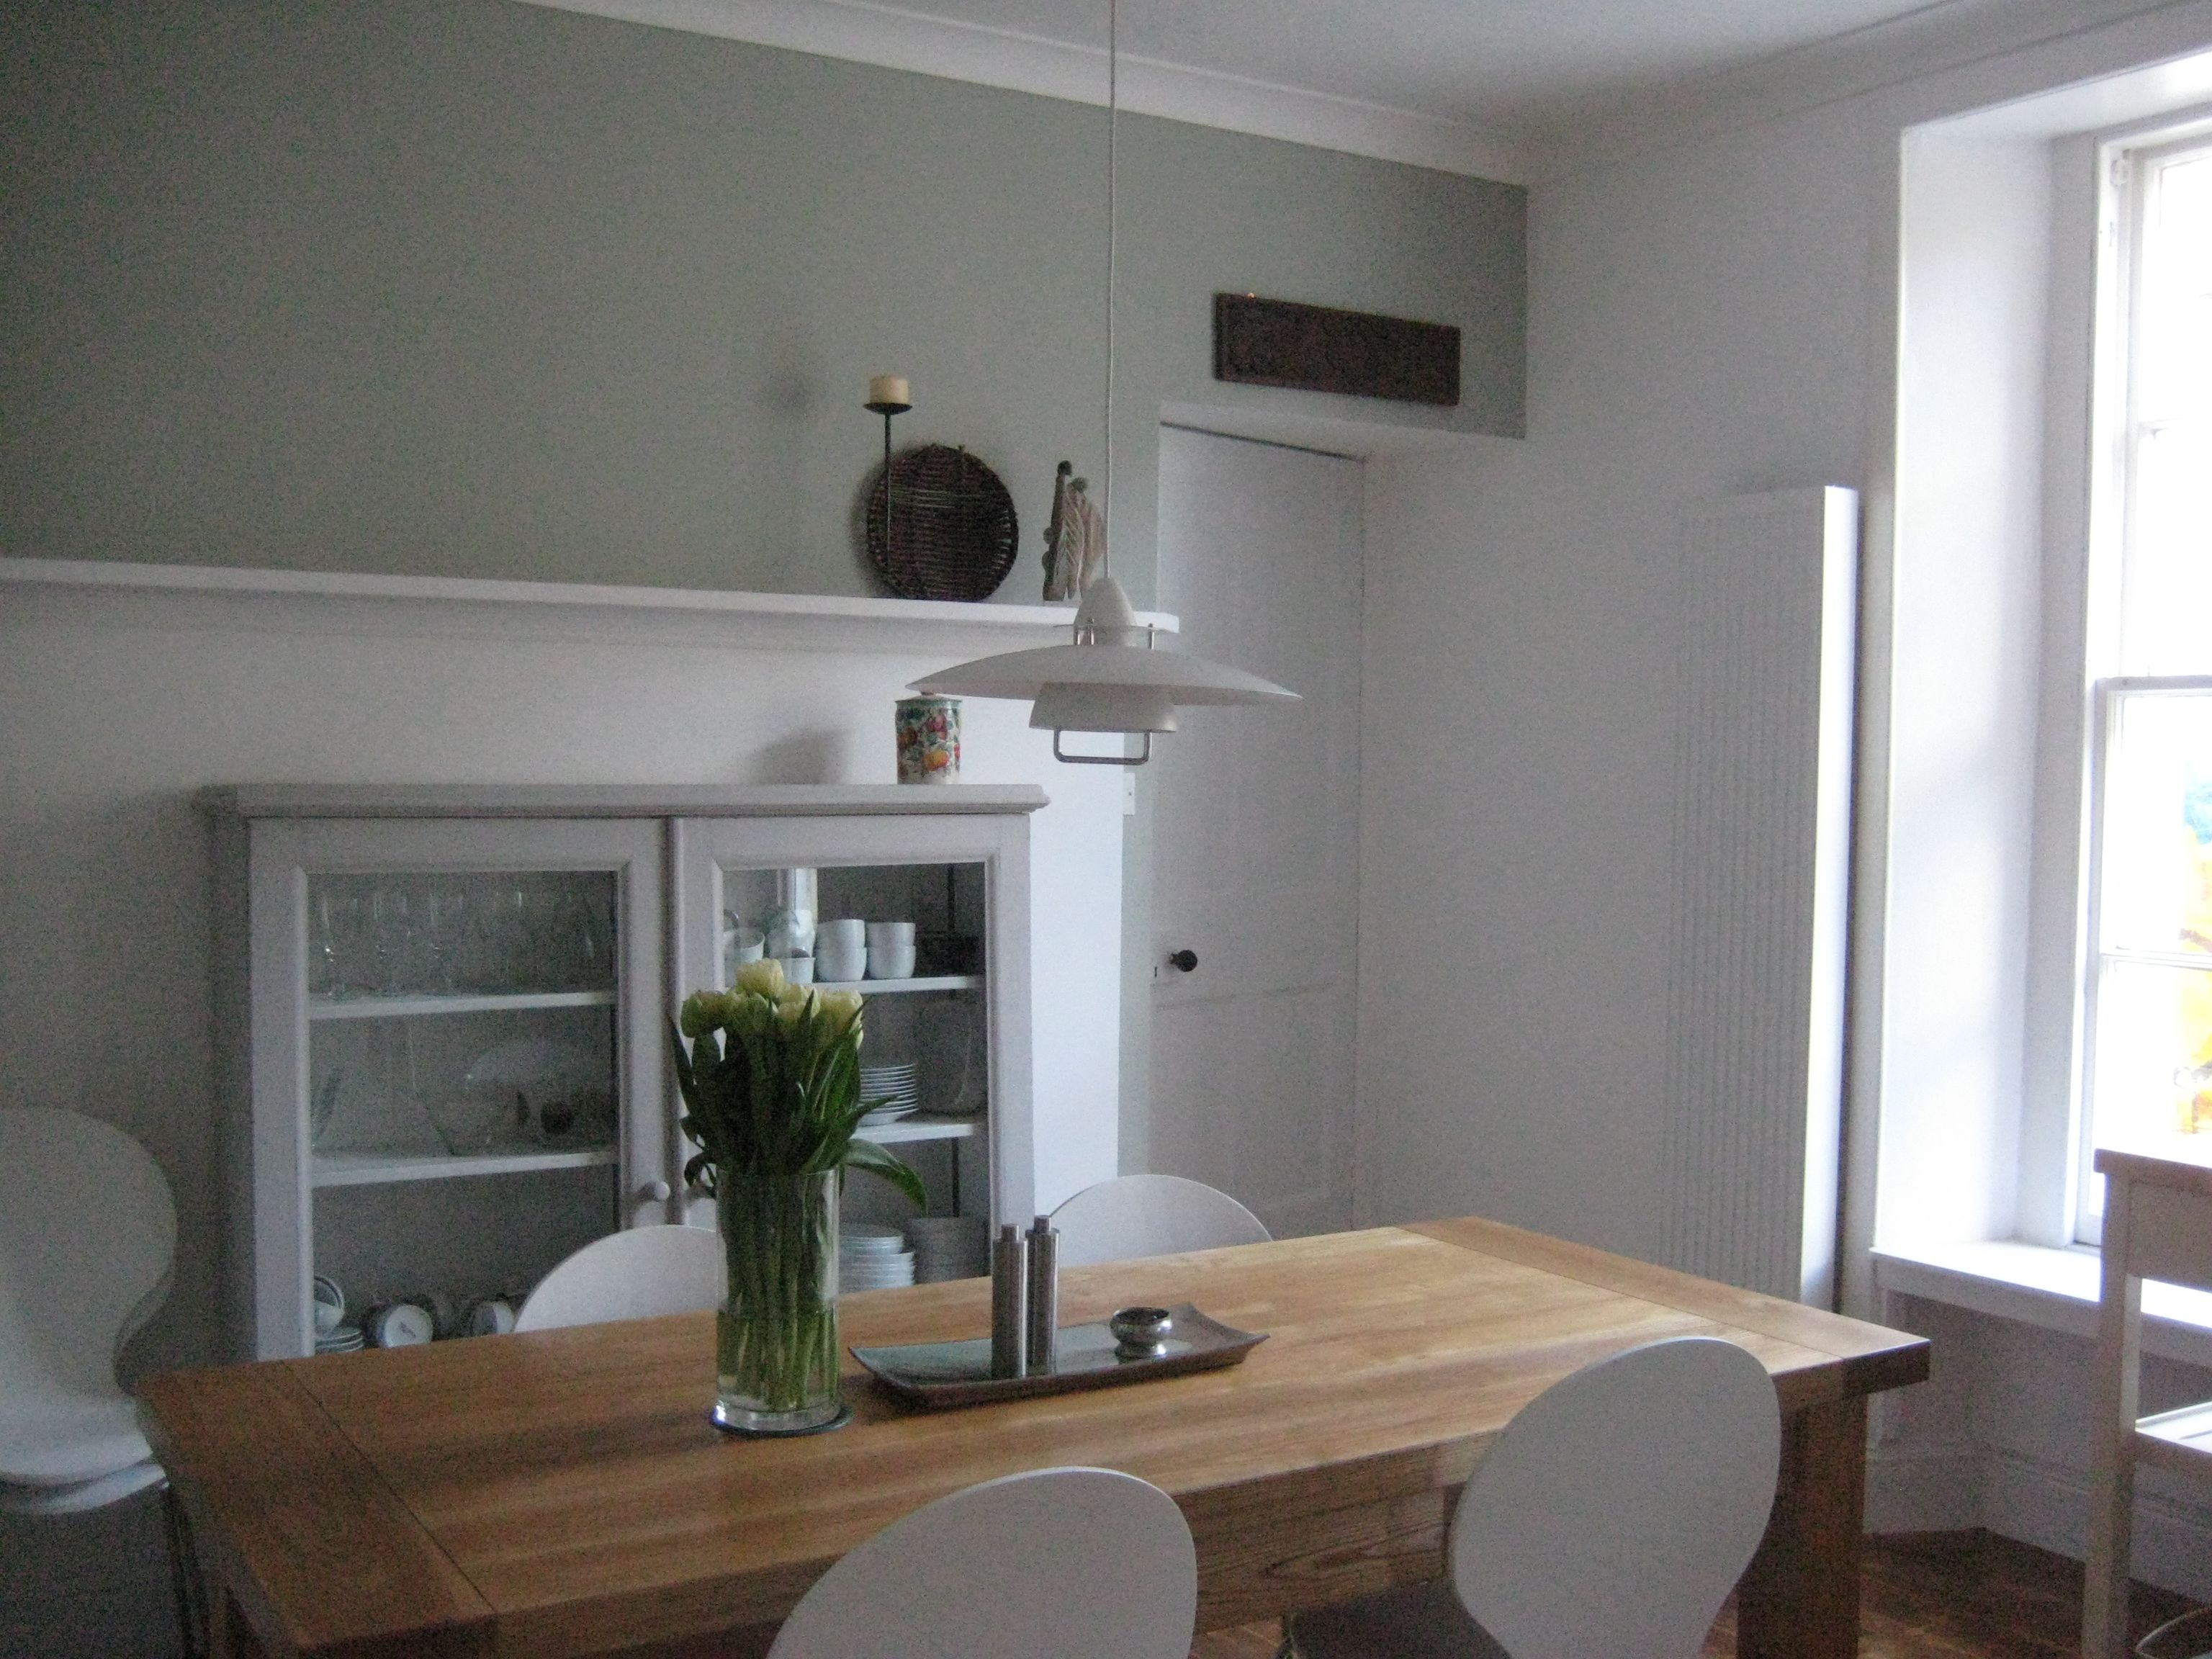 Farrow And Ball Mizzle.Dining Area In Farrow Ball Mizzle And White Cabinet In